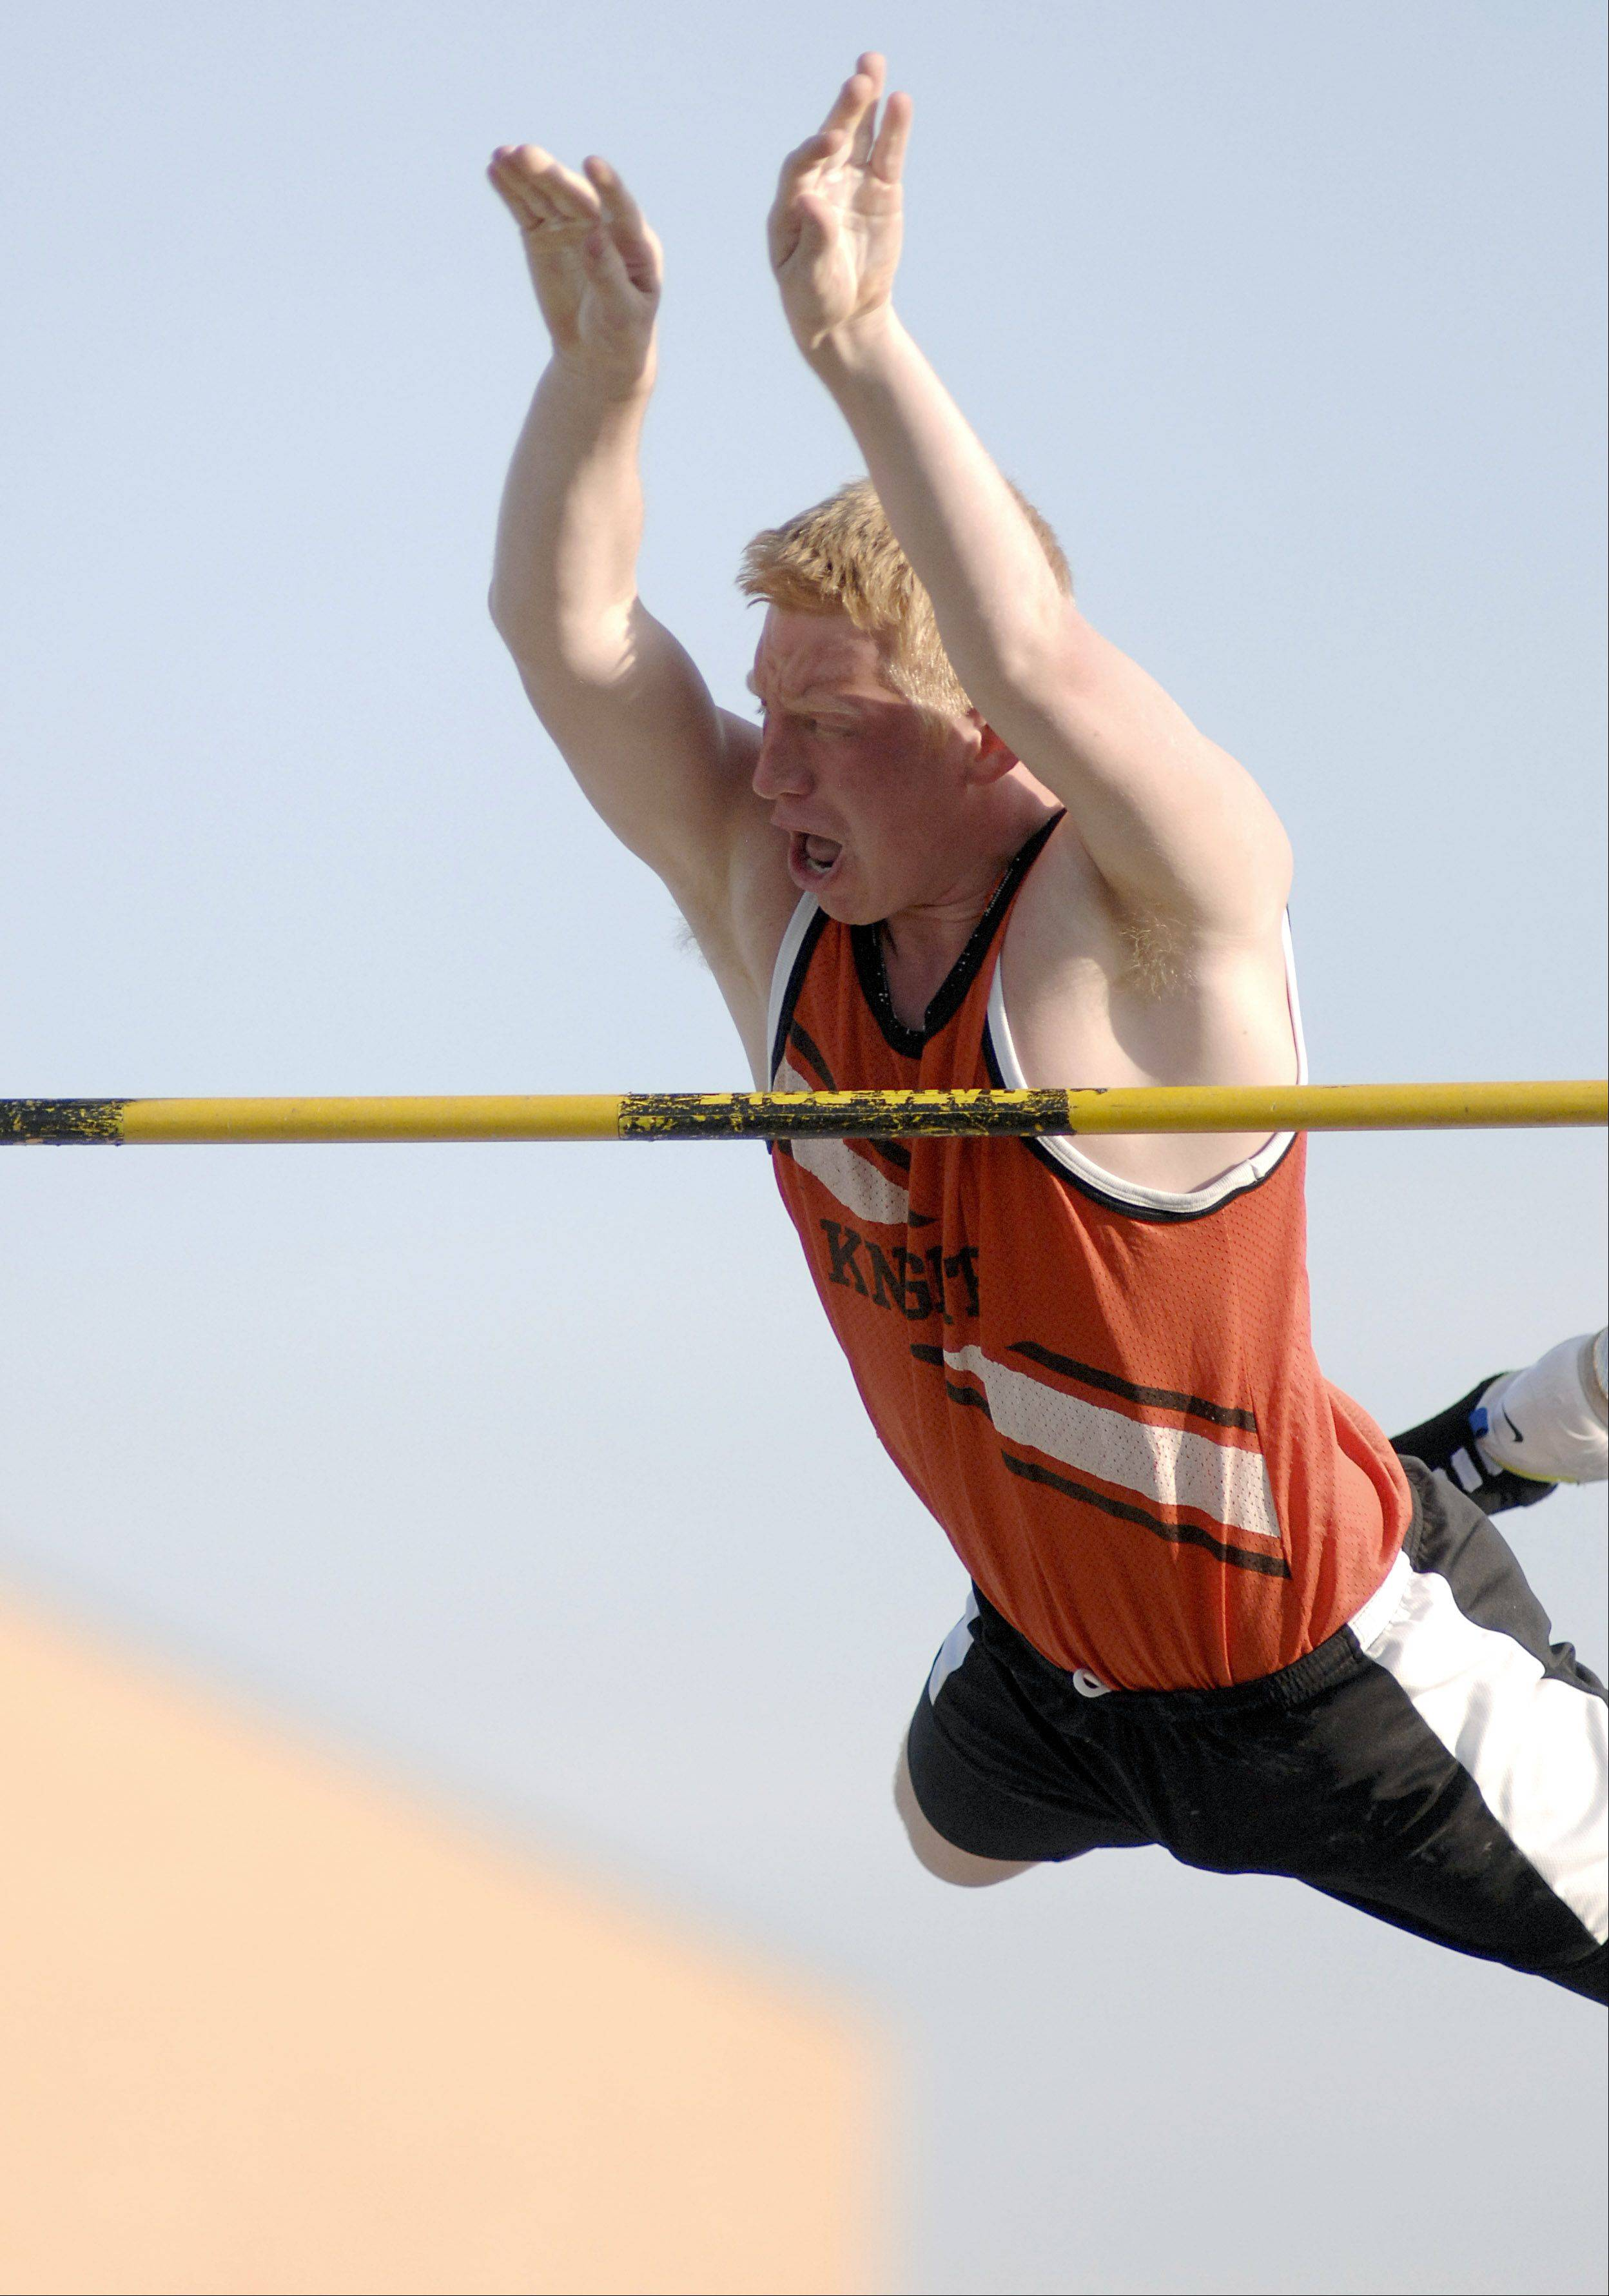 Laura Stoecker/lstoecker@dailyherald.com � Kaneland's Kory Harner in the pole vault final at the Kane County Boys Track & Field Meet on Friday, May 4.